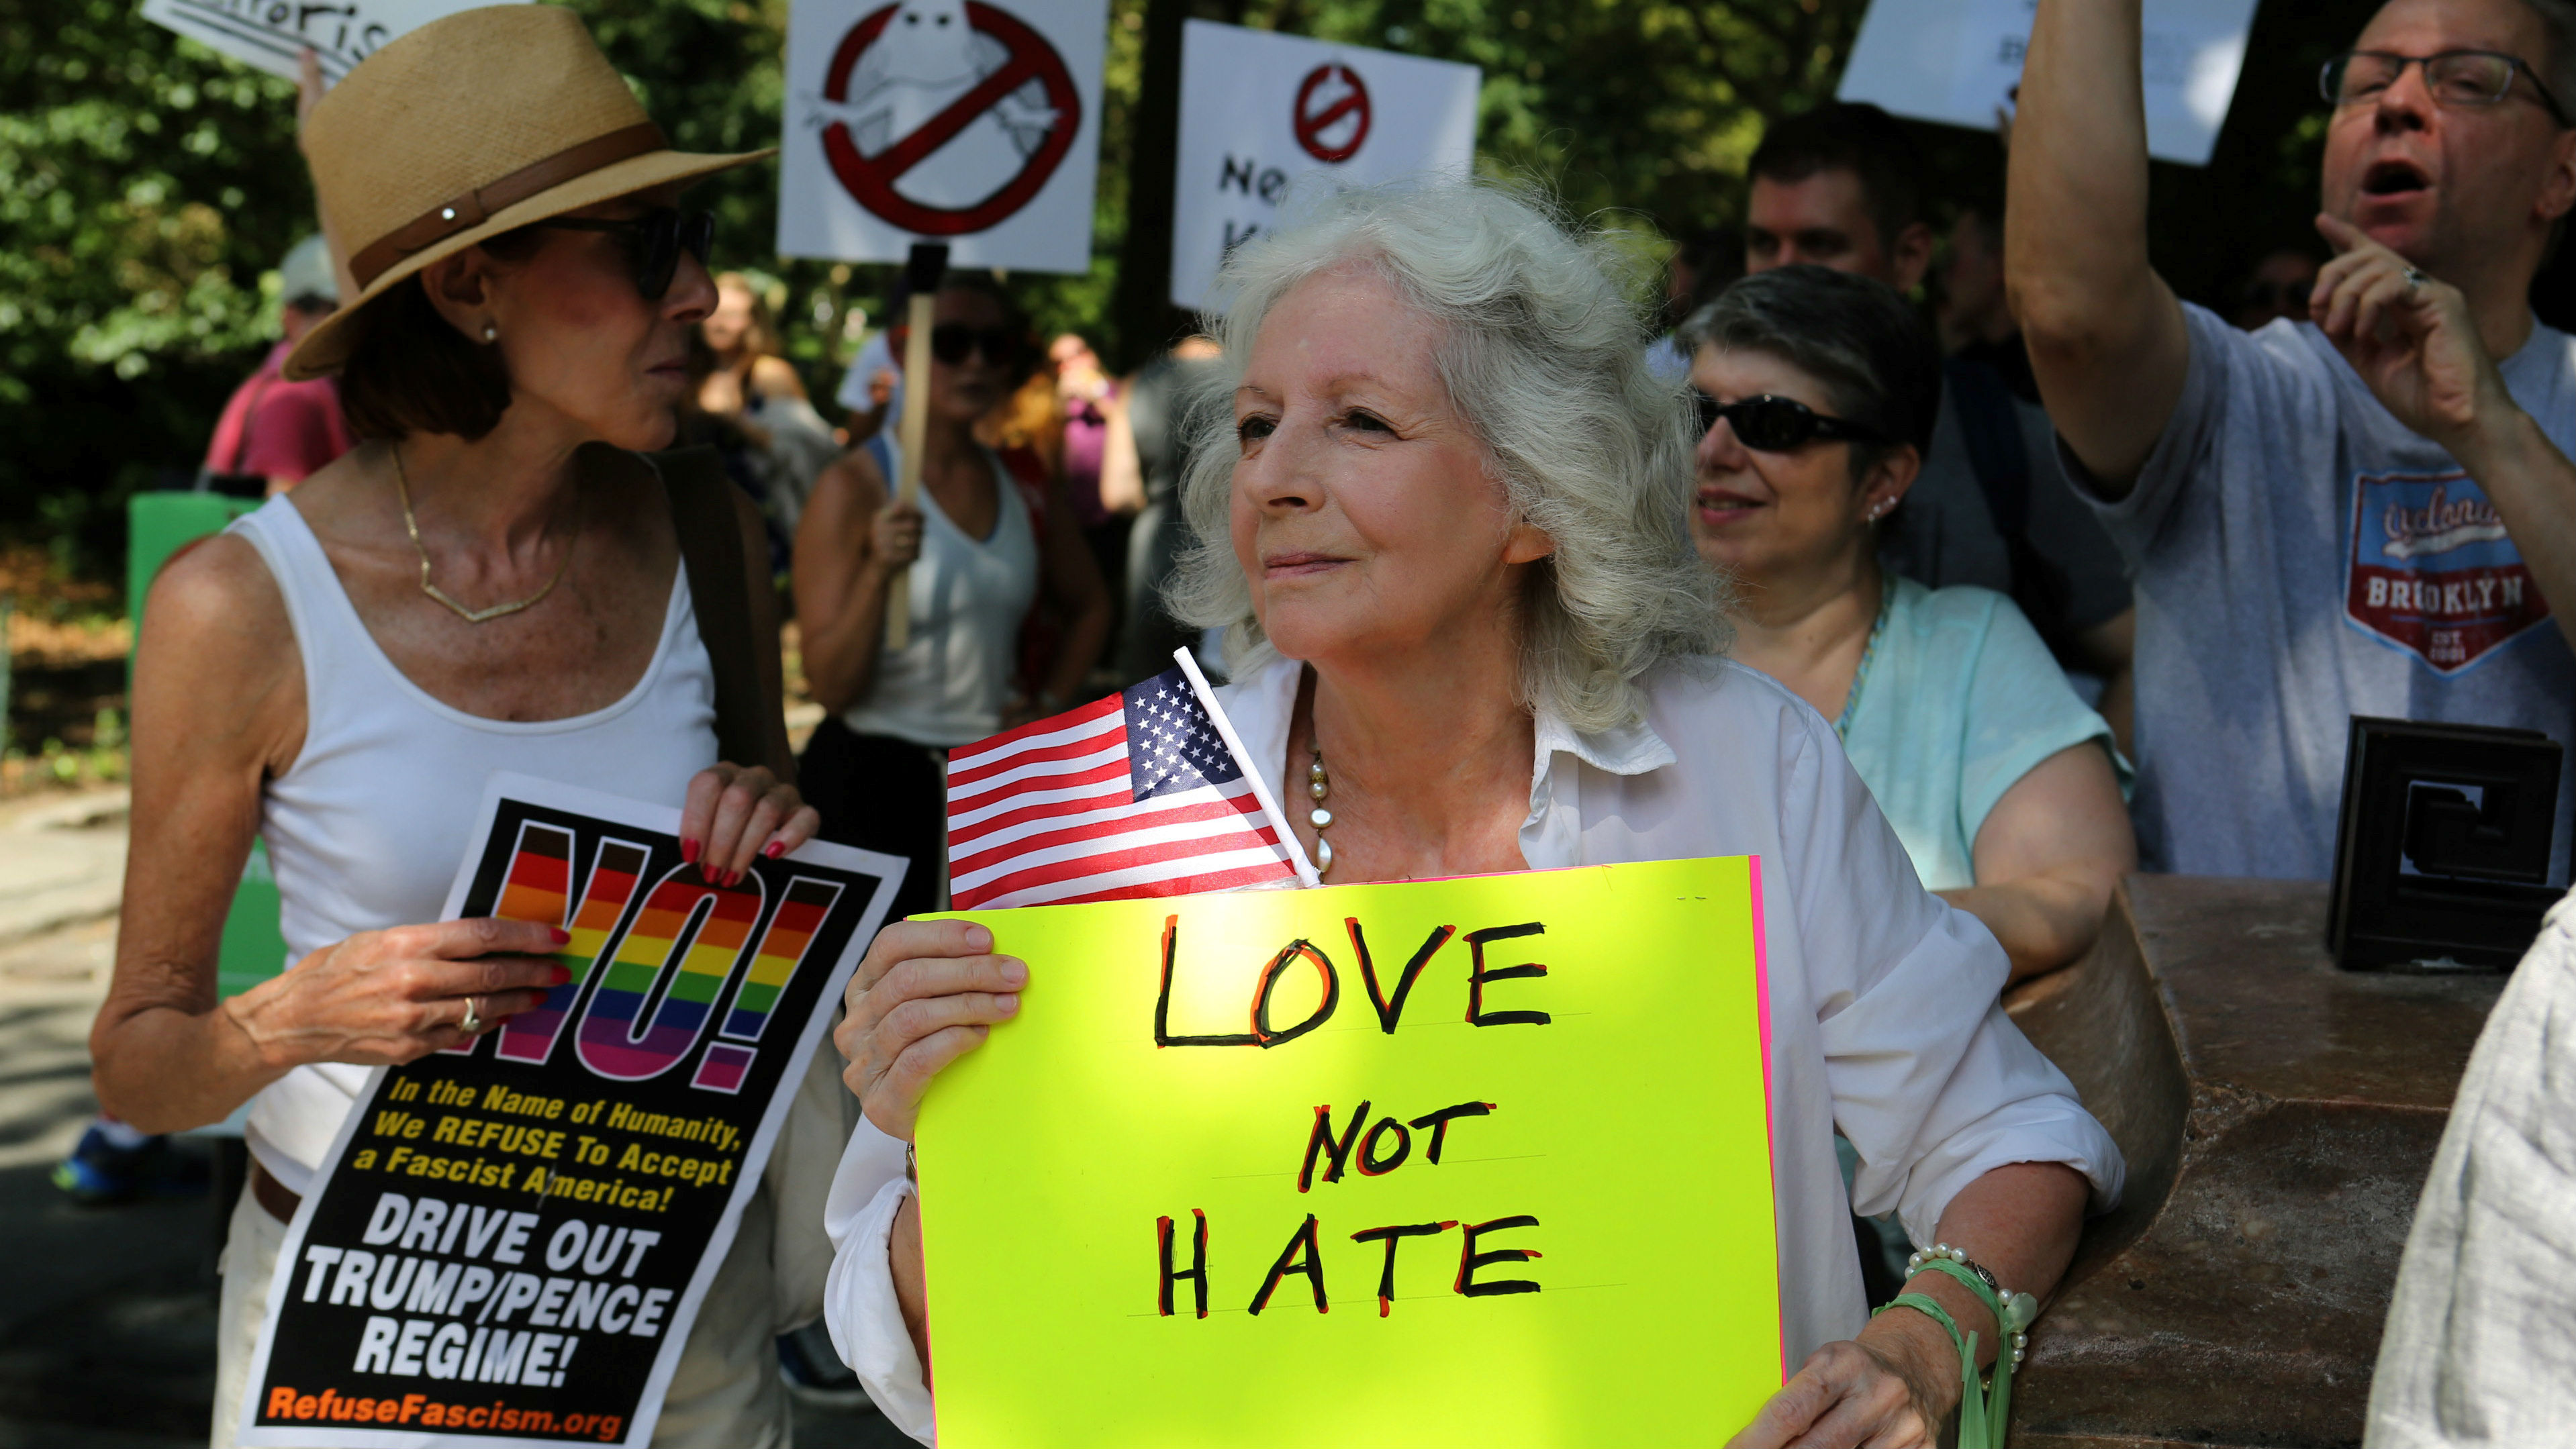 """A protester holds a sign reading """"Love not hate"""" during a march against white nationalism in New York City, the day after the attack on counter-protesters at the """"Unite the Right"""" rally organized by white nationalists in Charlottesville, Virginia, U.S., August 13, 2017."""